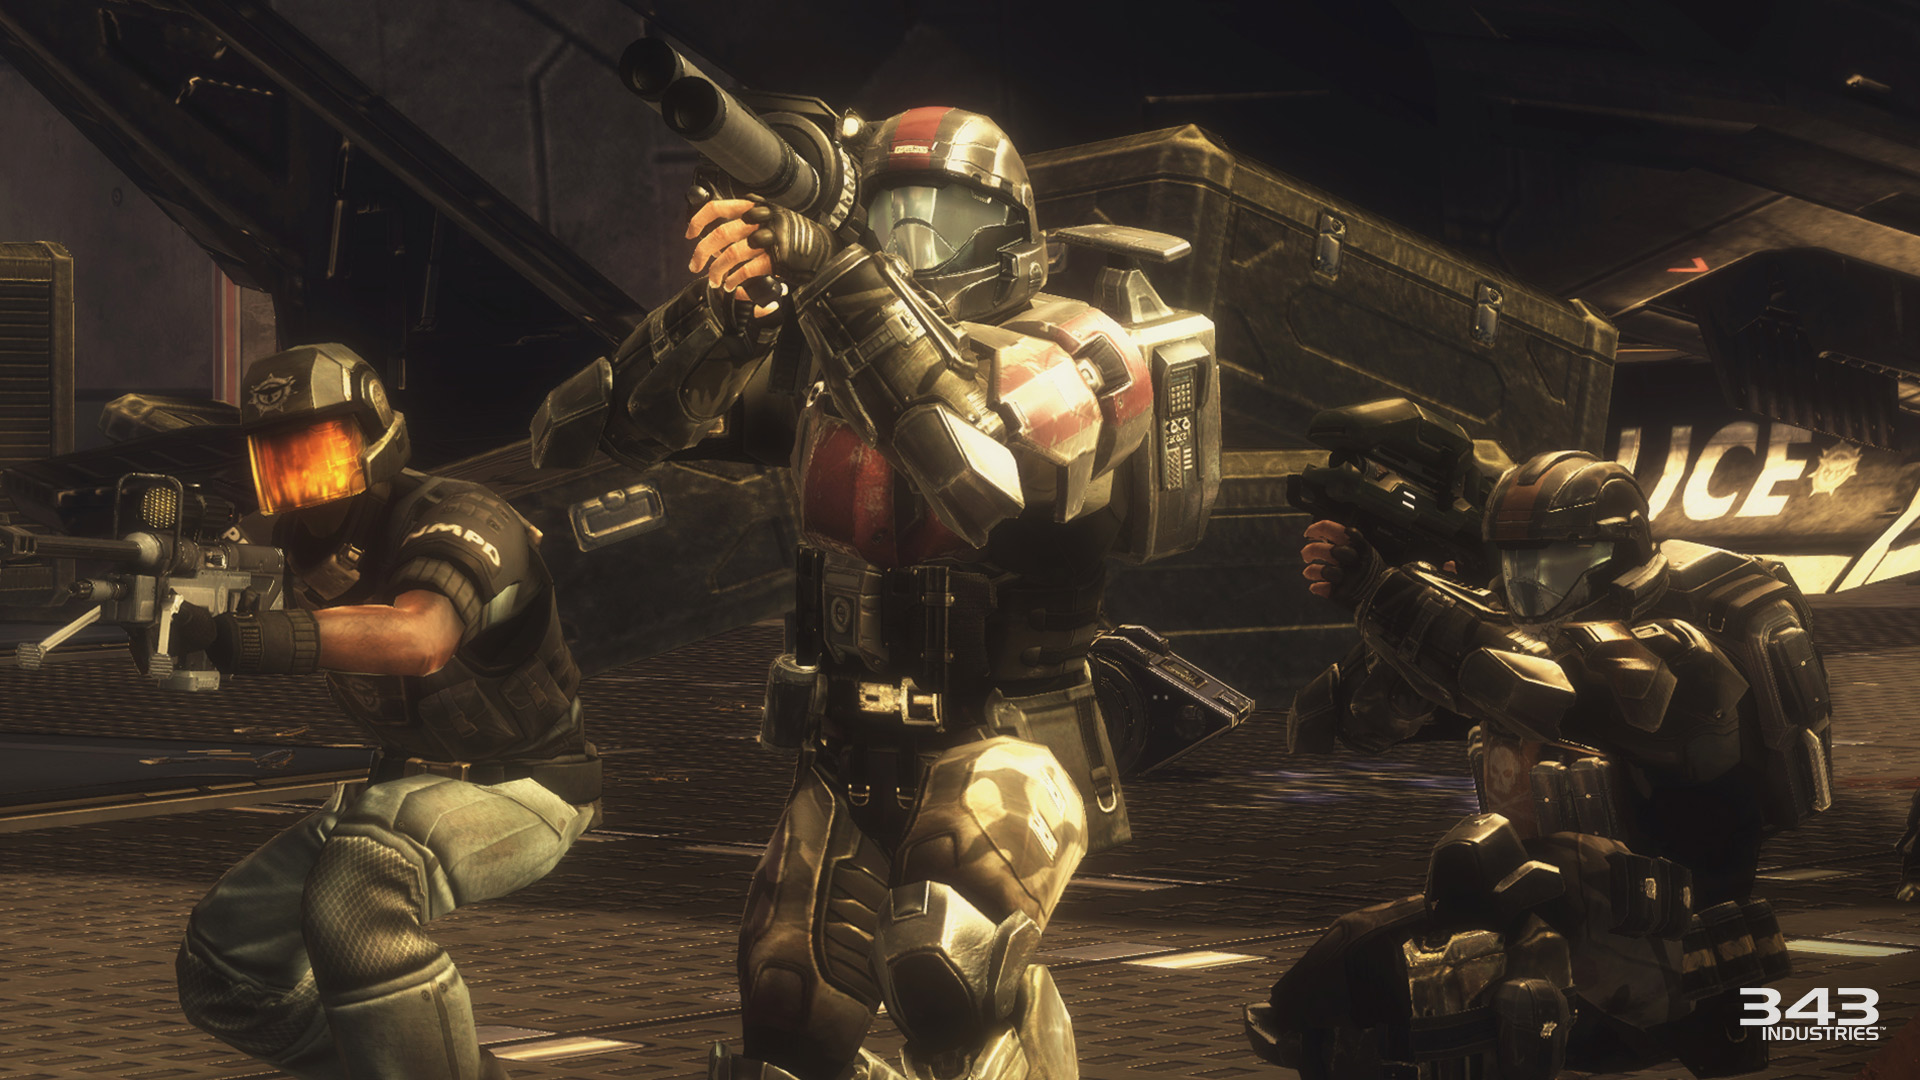 Halo 3: ODST Firefight se añadirá a la Master Chief Collection este verano